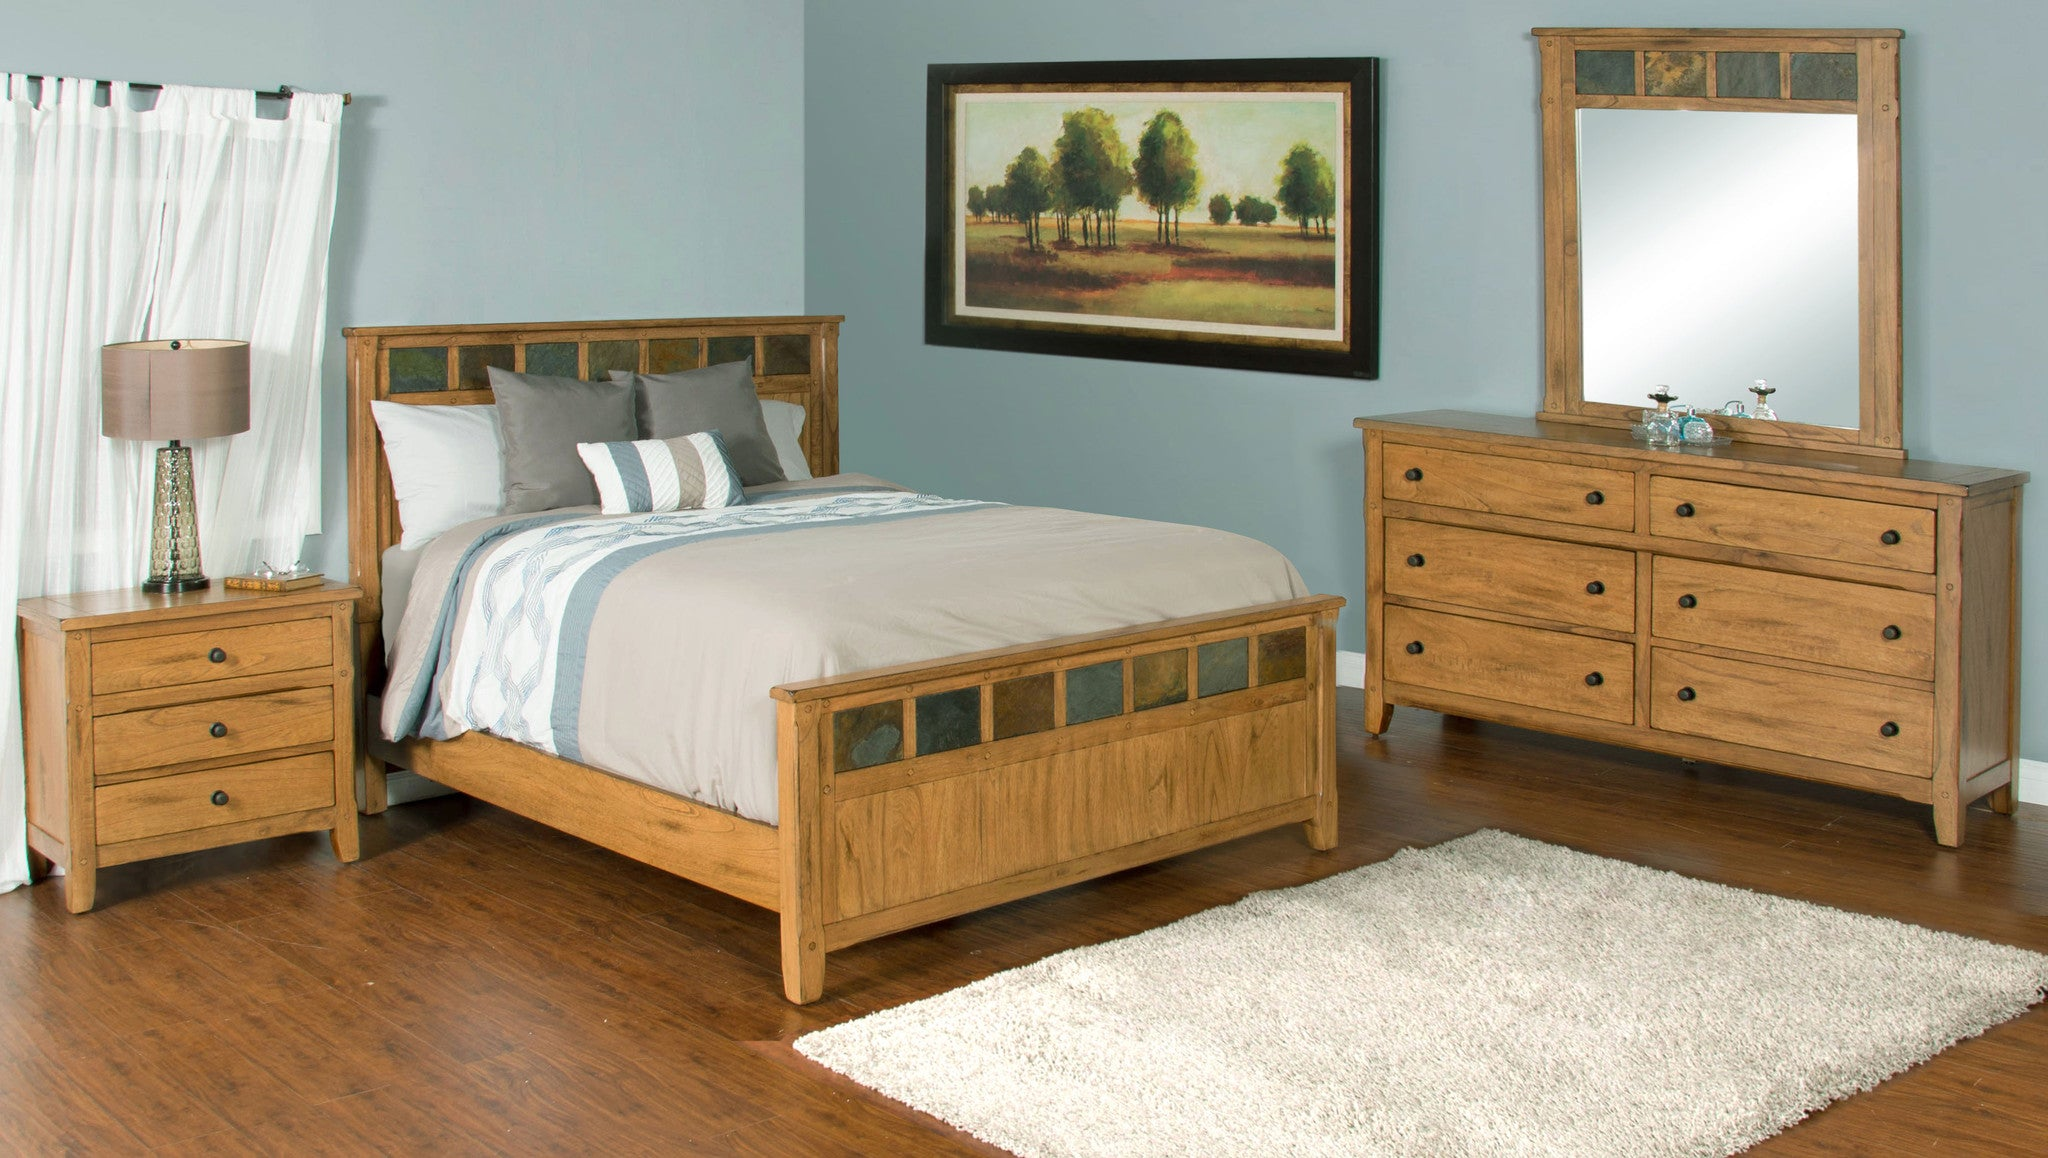 Sedona Rustic Petite Panel Bedroom Suite